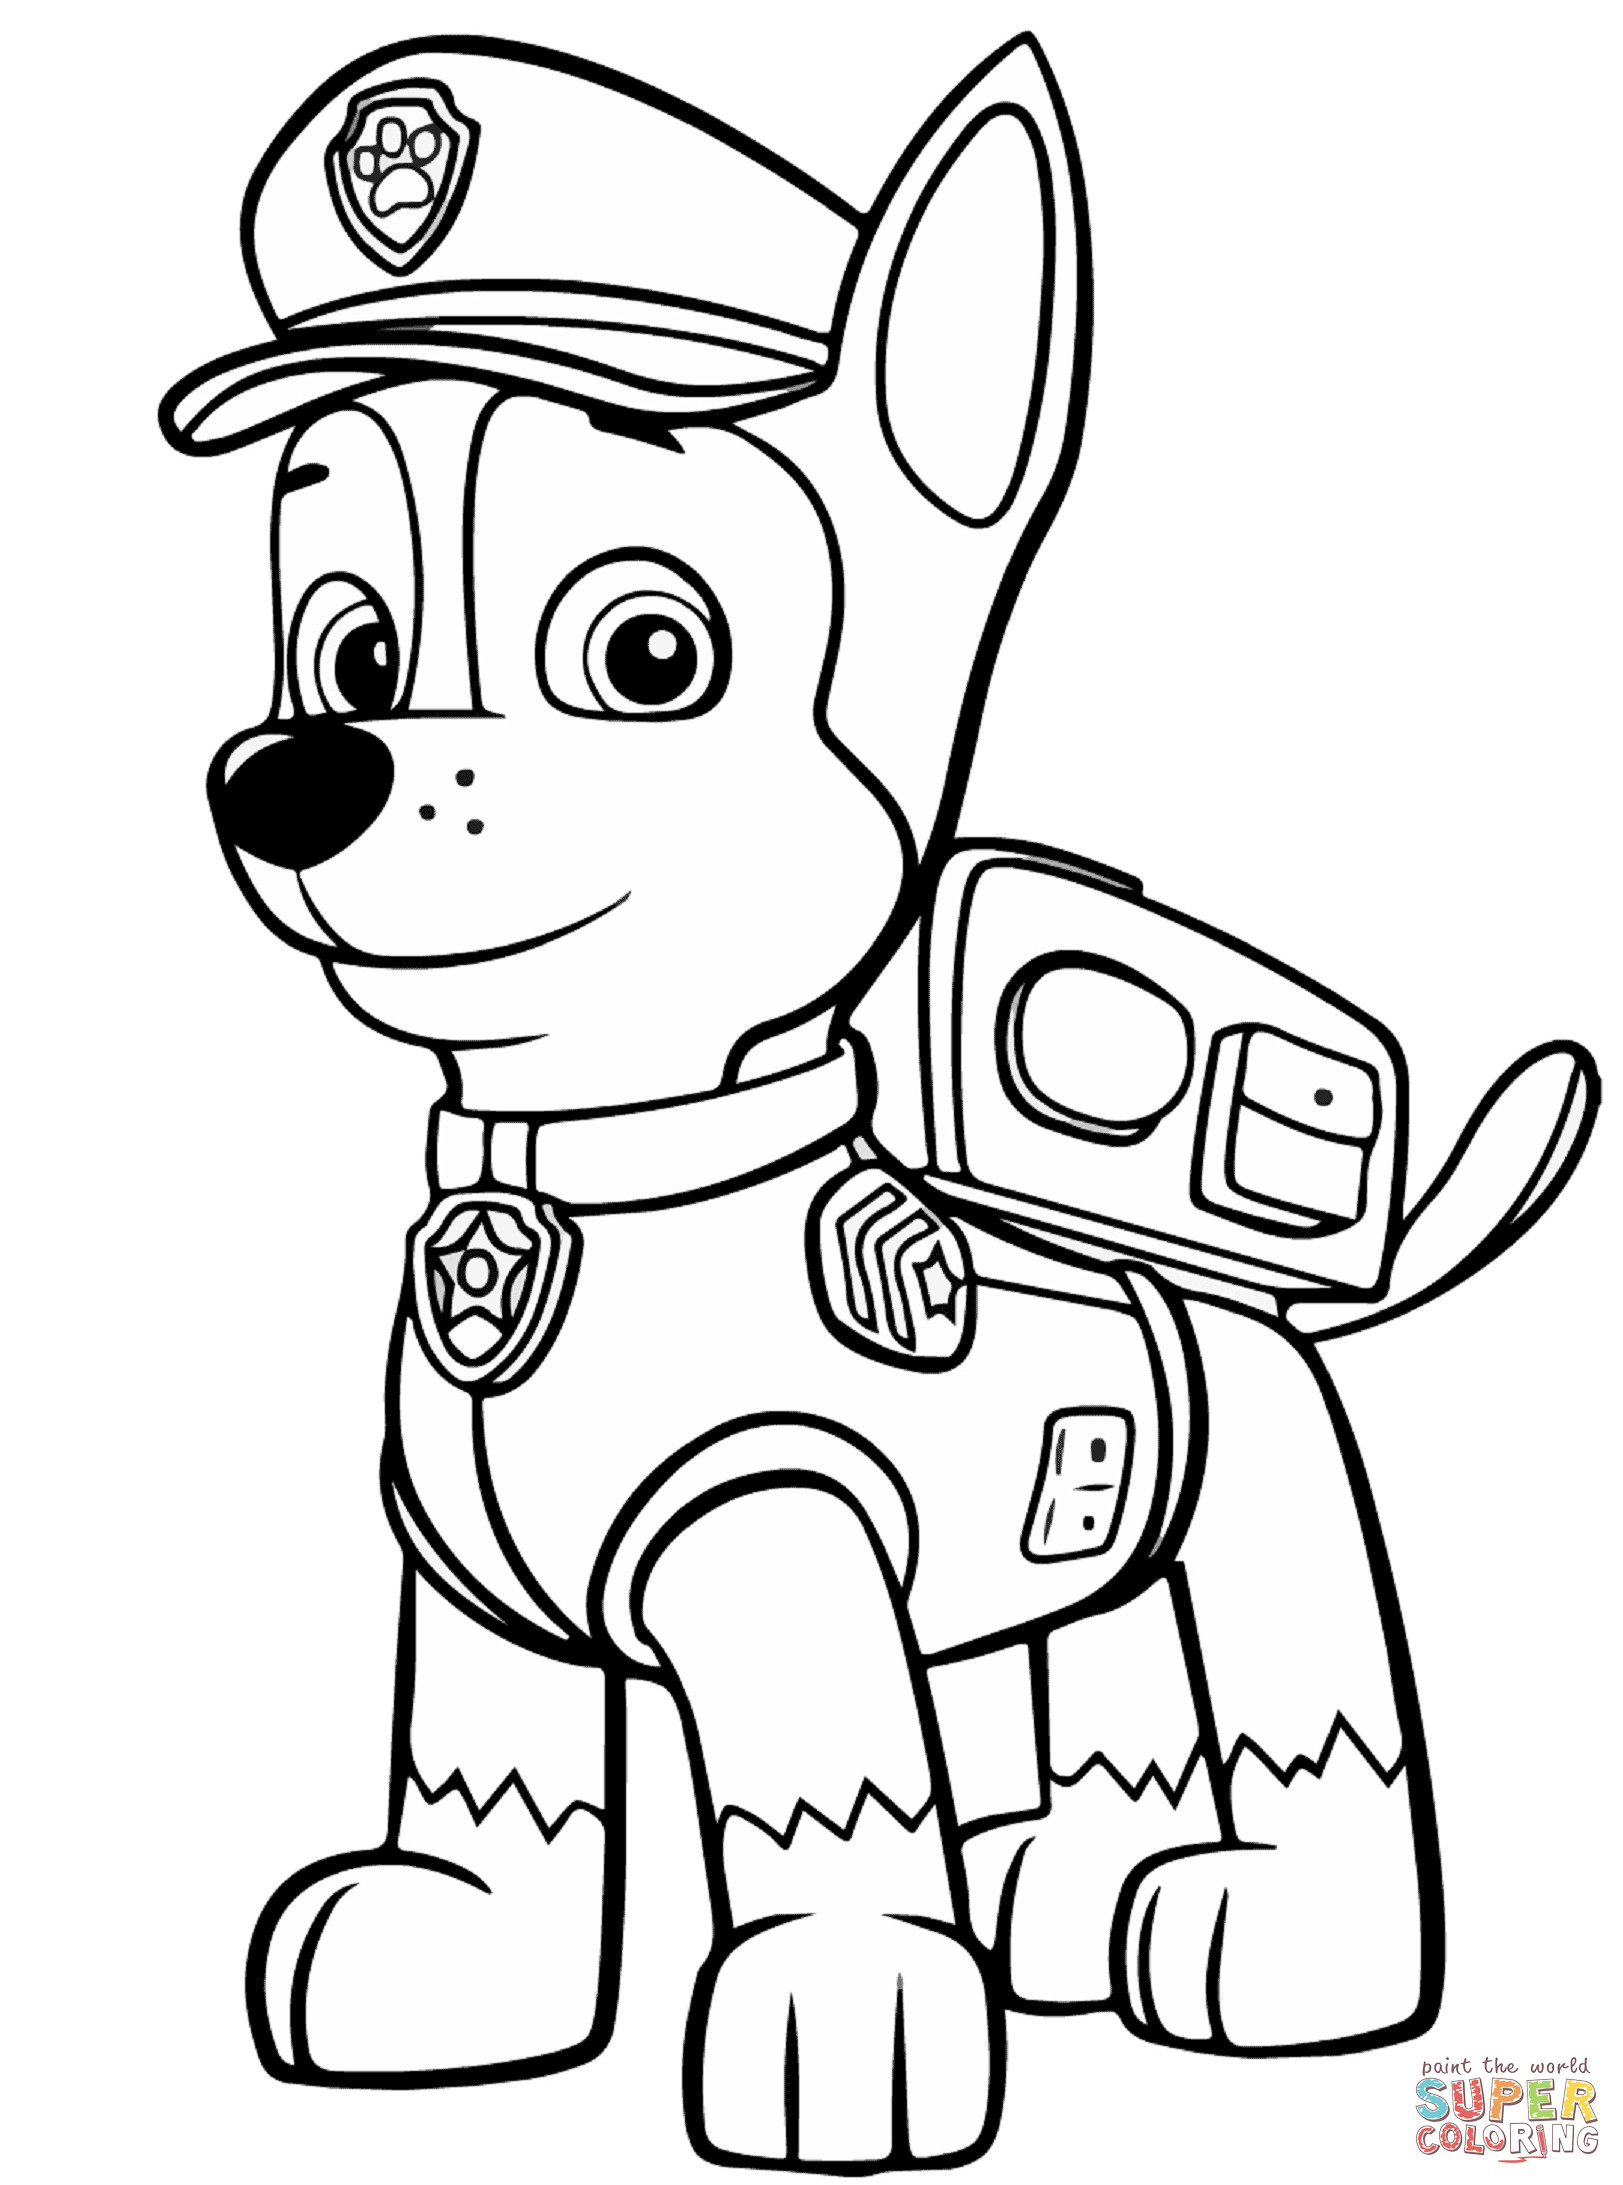 Best ideas about Paw Patrol Free Coloring Sheets . Save or Pin Paw Patrol Chase coloring page Now.